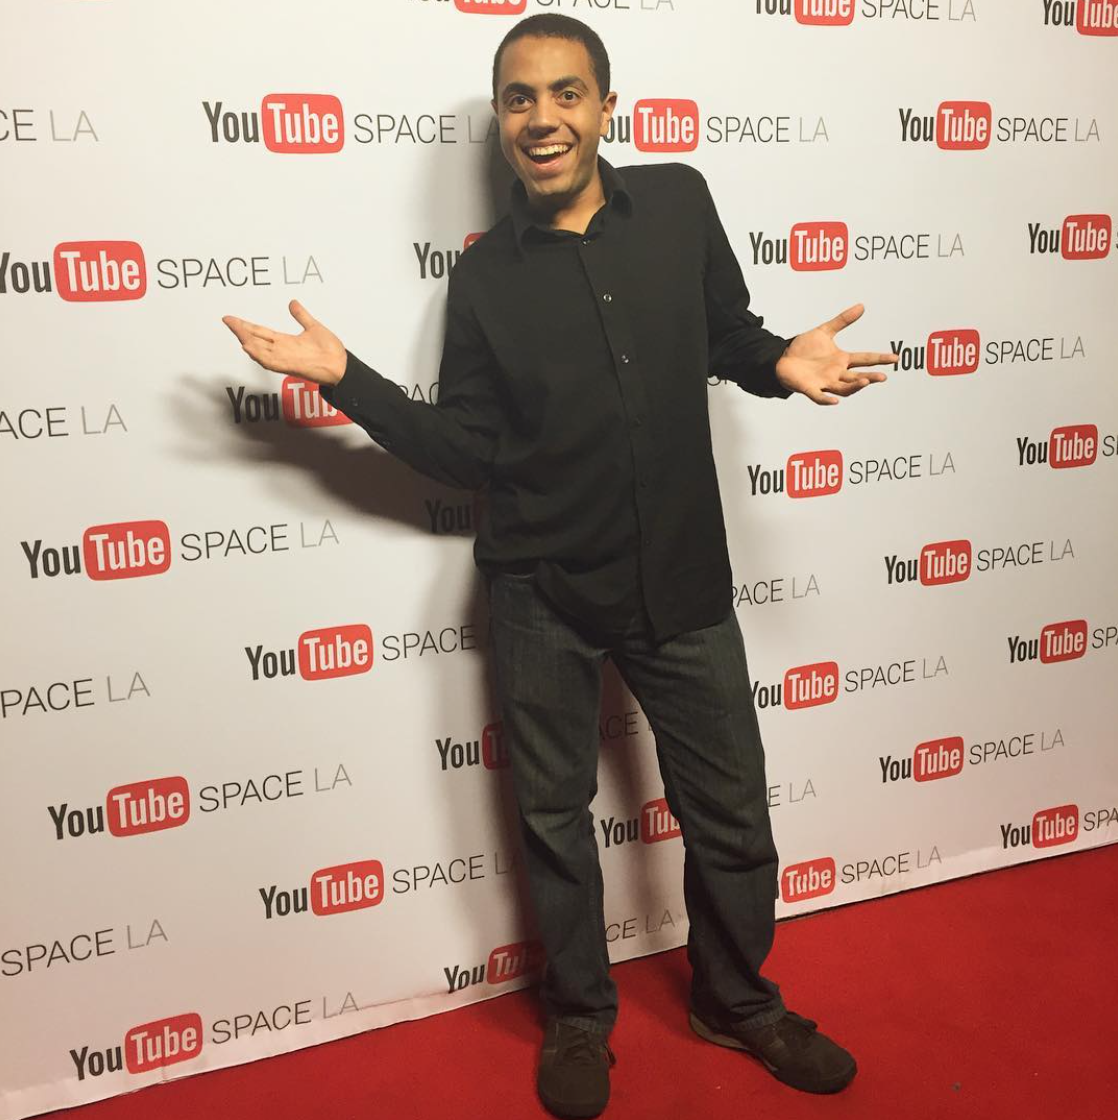 Alex at YouTube LA Party